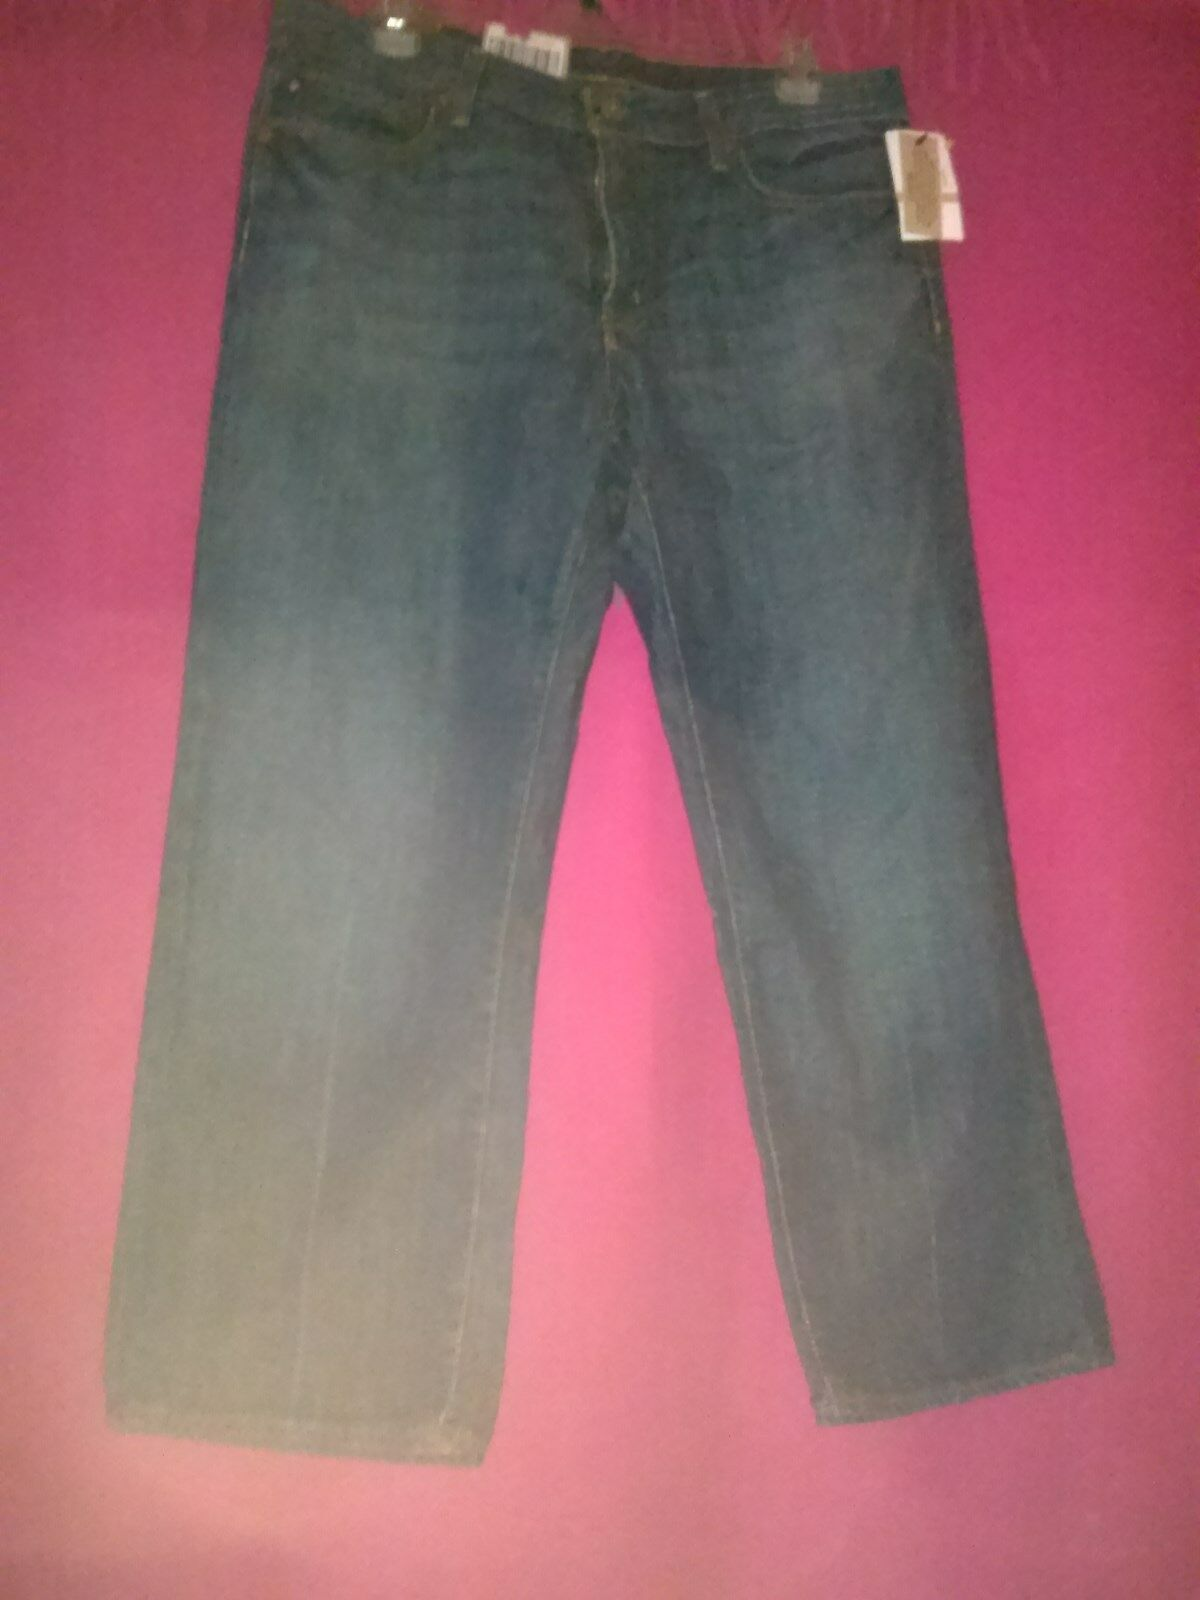 POLO JEANS RALPH LAUREN CROPPED KELLY JEANS LOW RISE CROPPED LEG  WOMENS SIZE 12